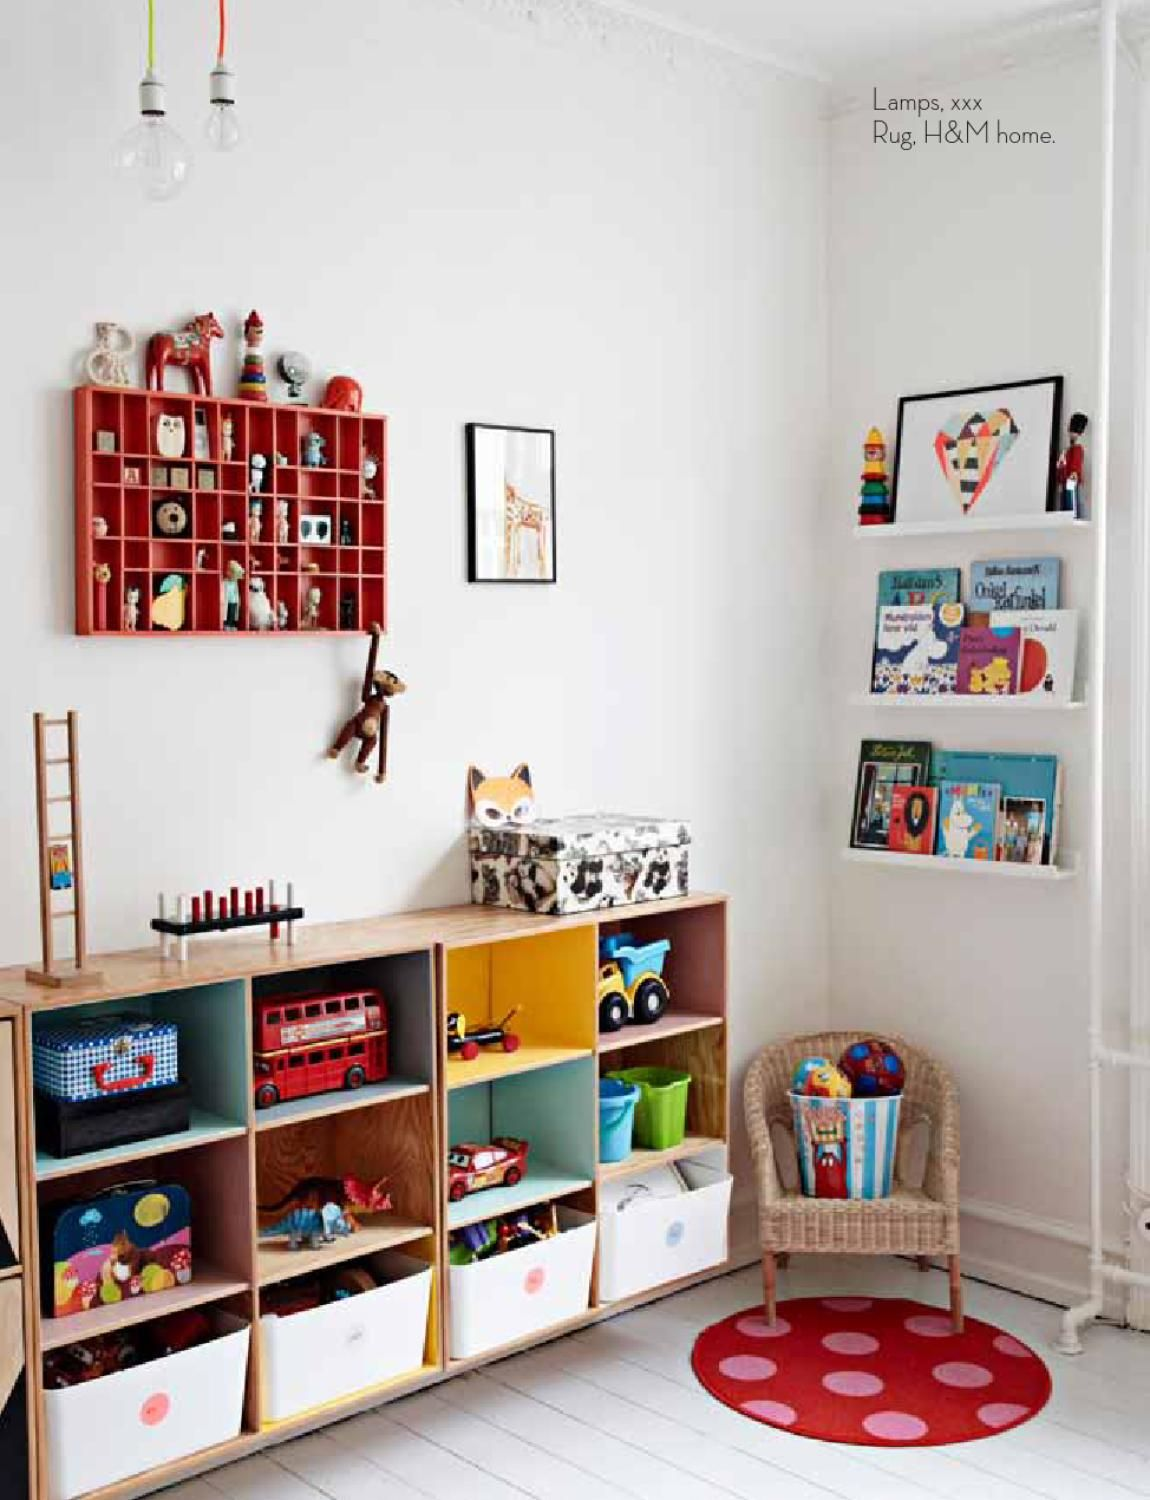 Wall Lamps For Kids Rooms Lille Nord 02 Dormitorios Niños Kids Room Kids